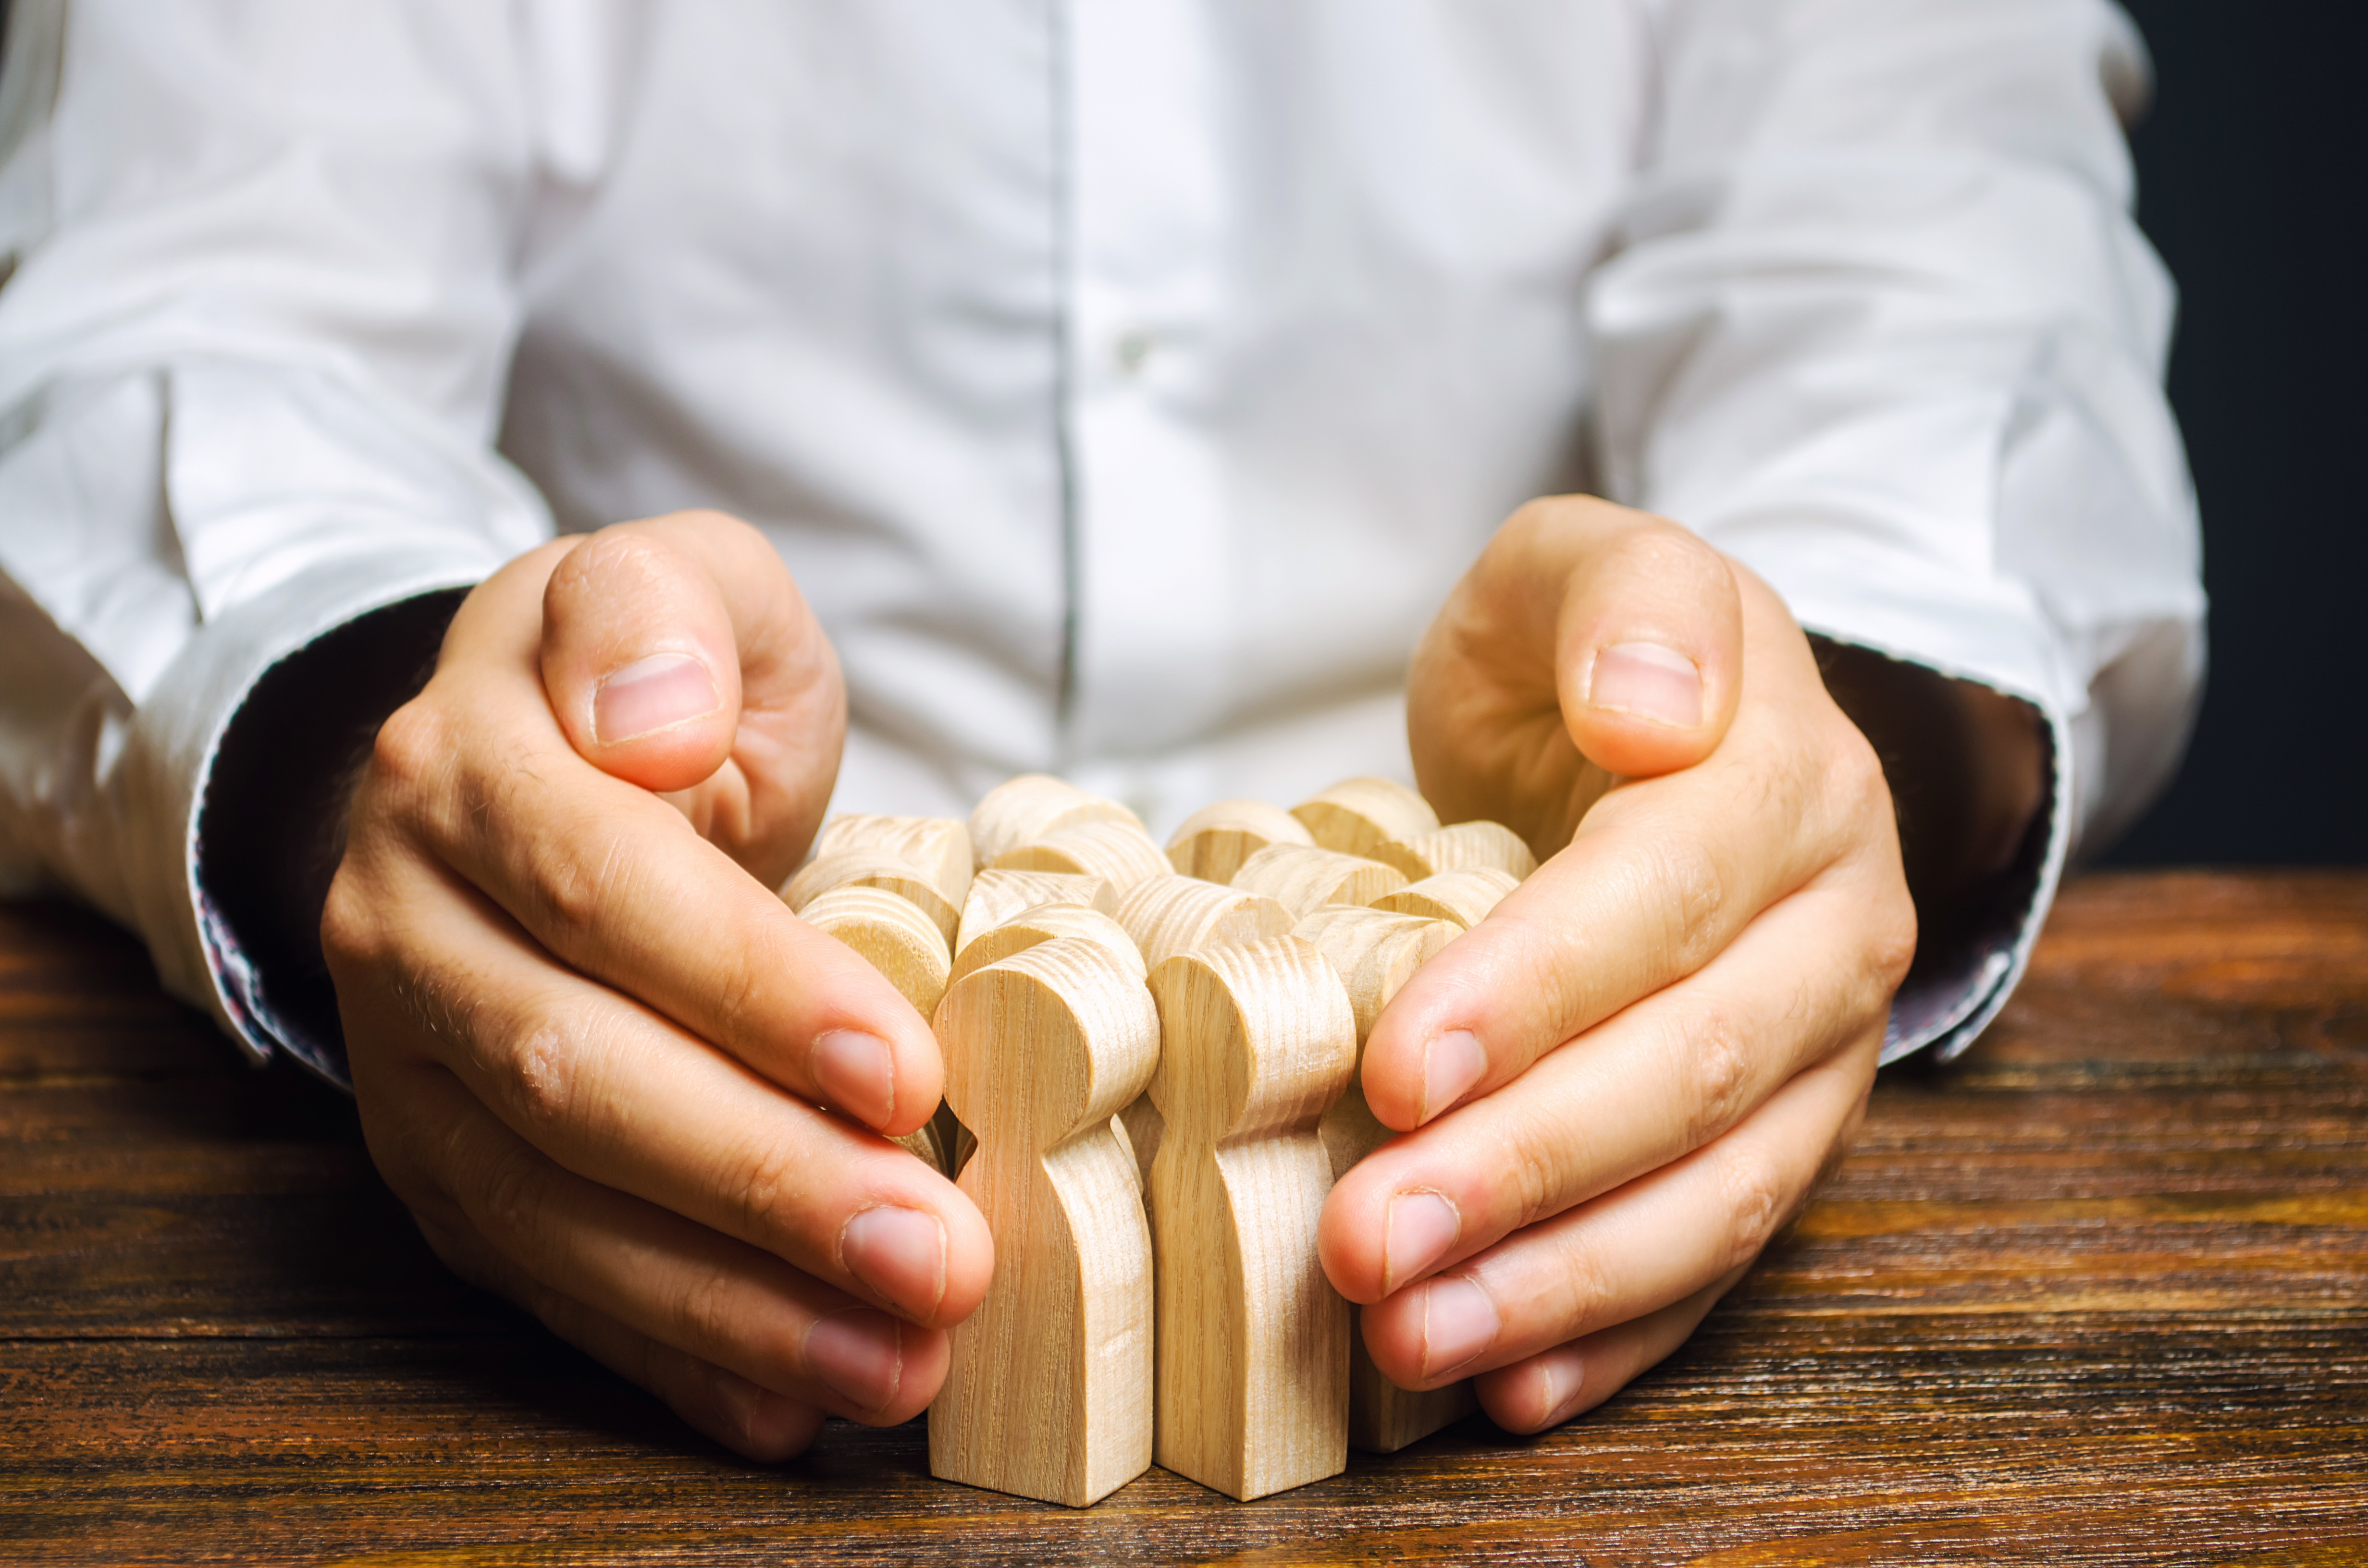 Hands on a table holding a cluster of wooden figurines.